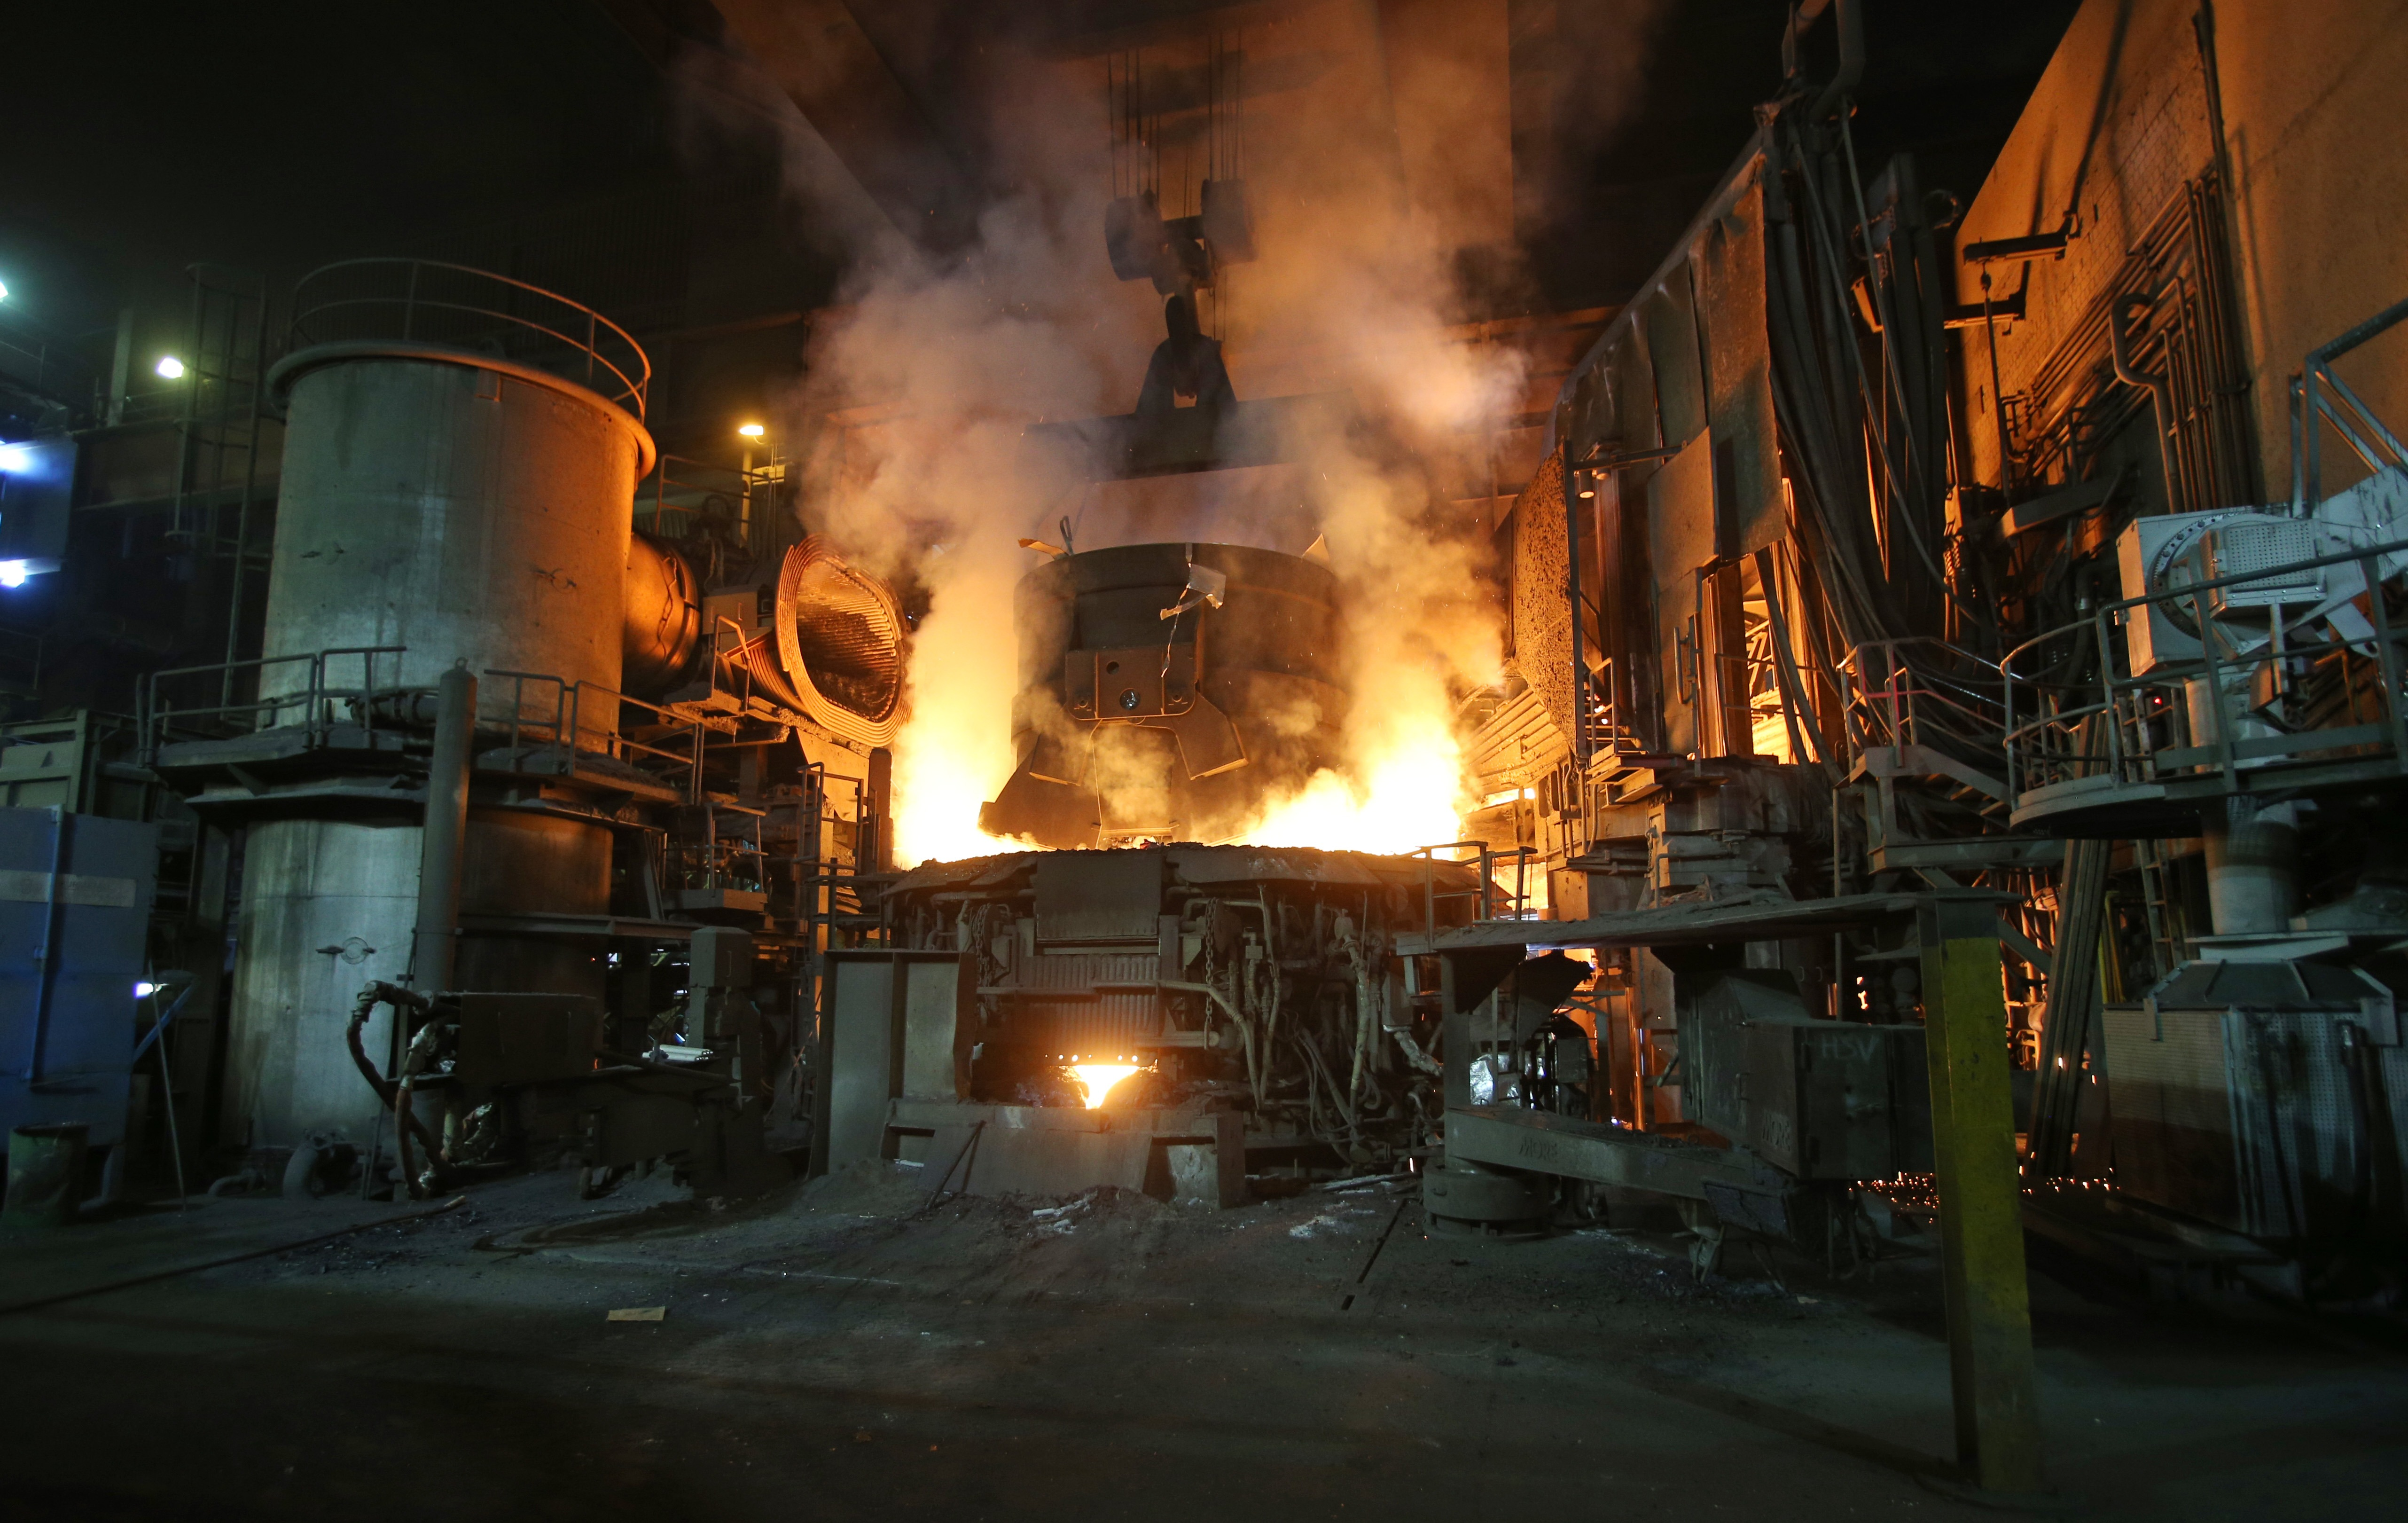 Arcelor to capture co2 in dunkirk newmobility.news